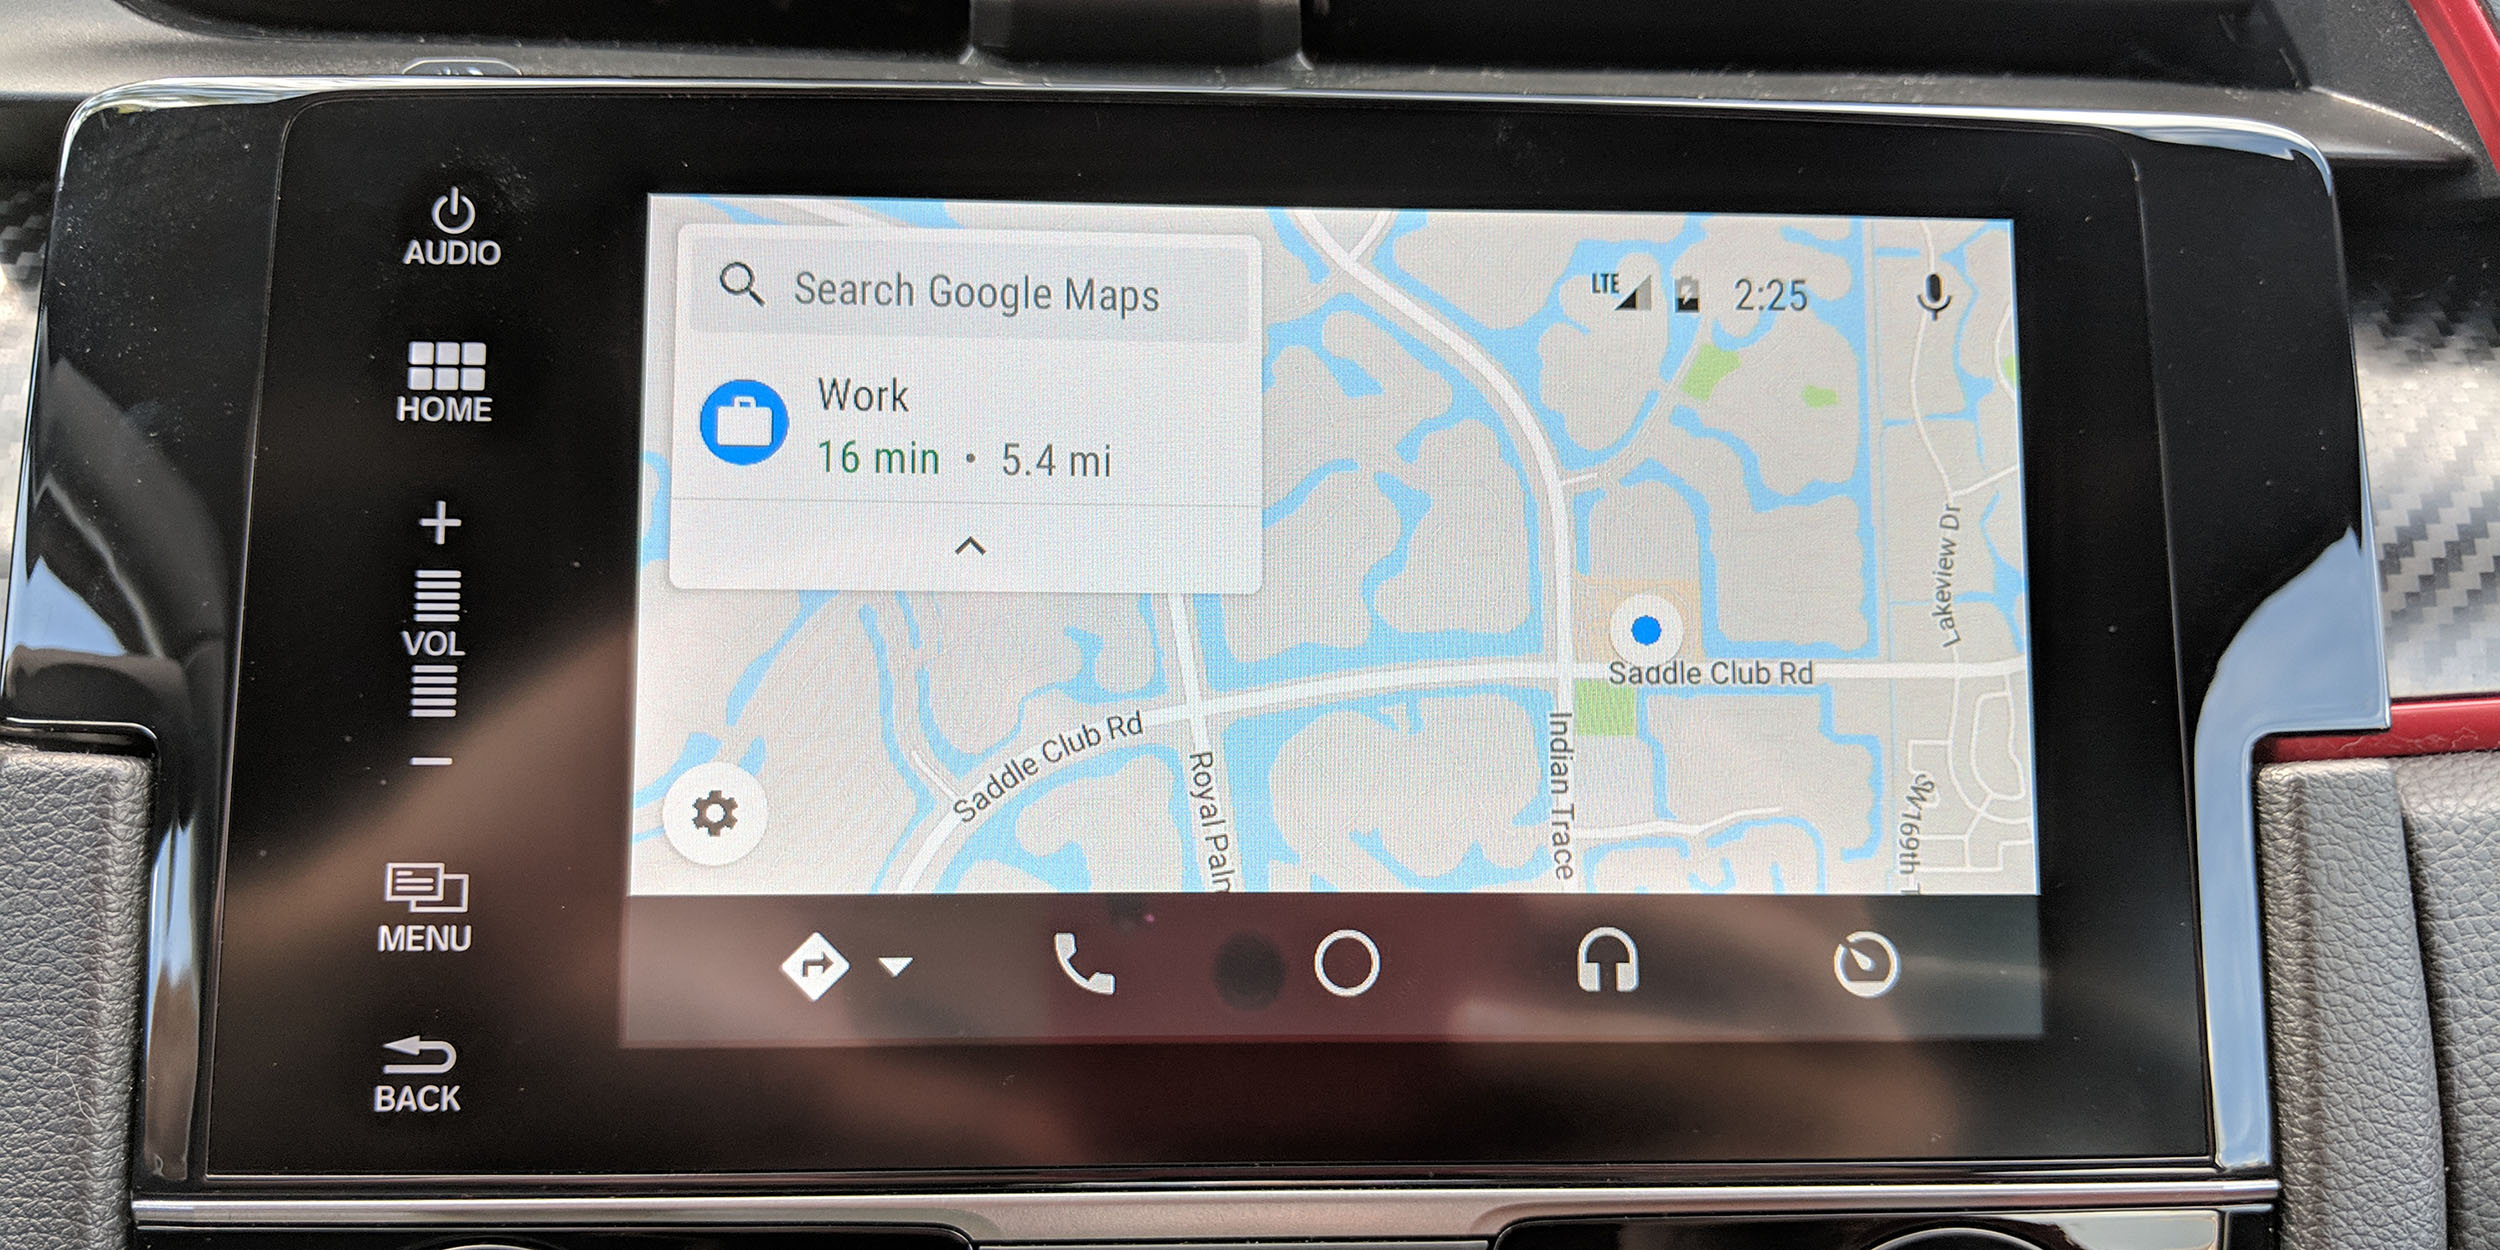 Google Maps for Android Auto gets a refreshed layout with Material design changes